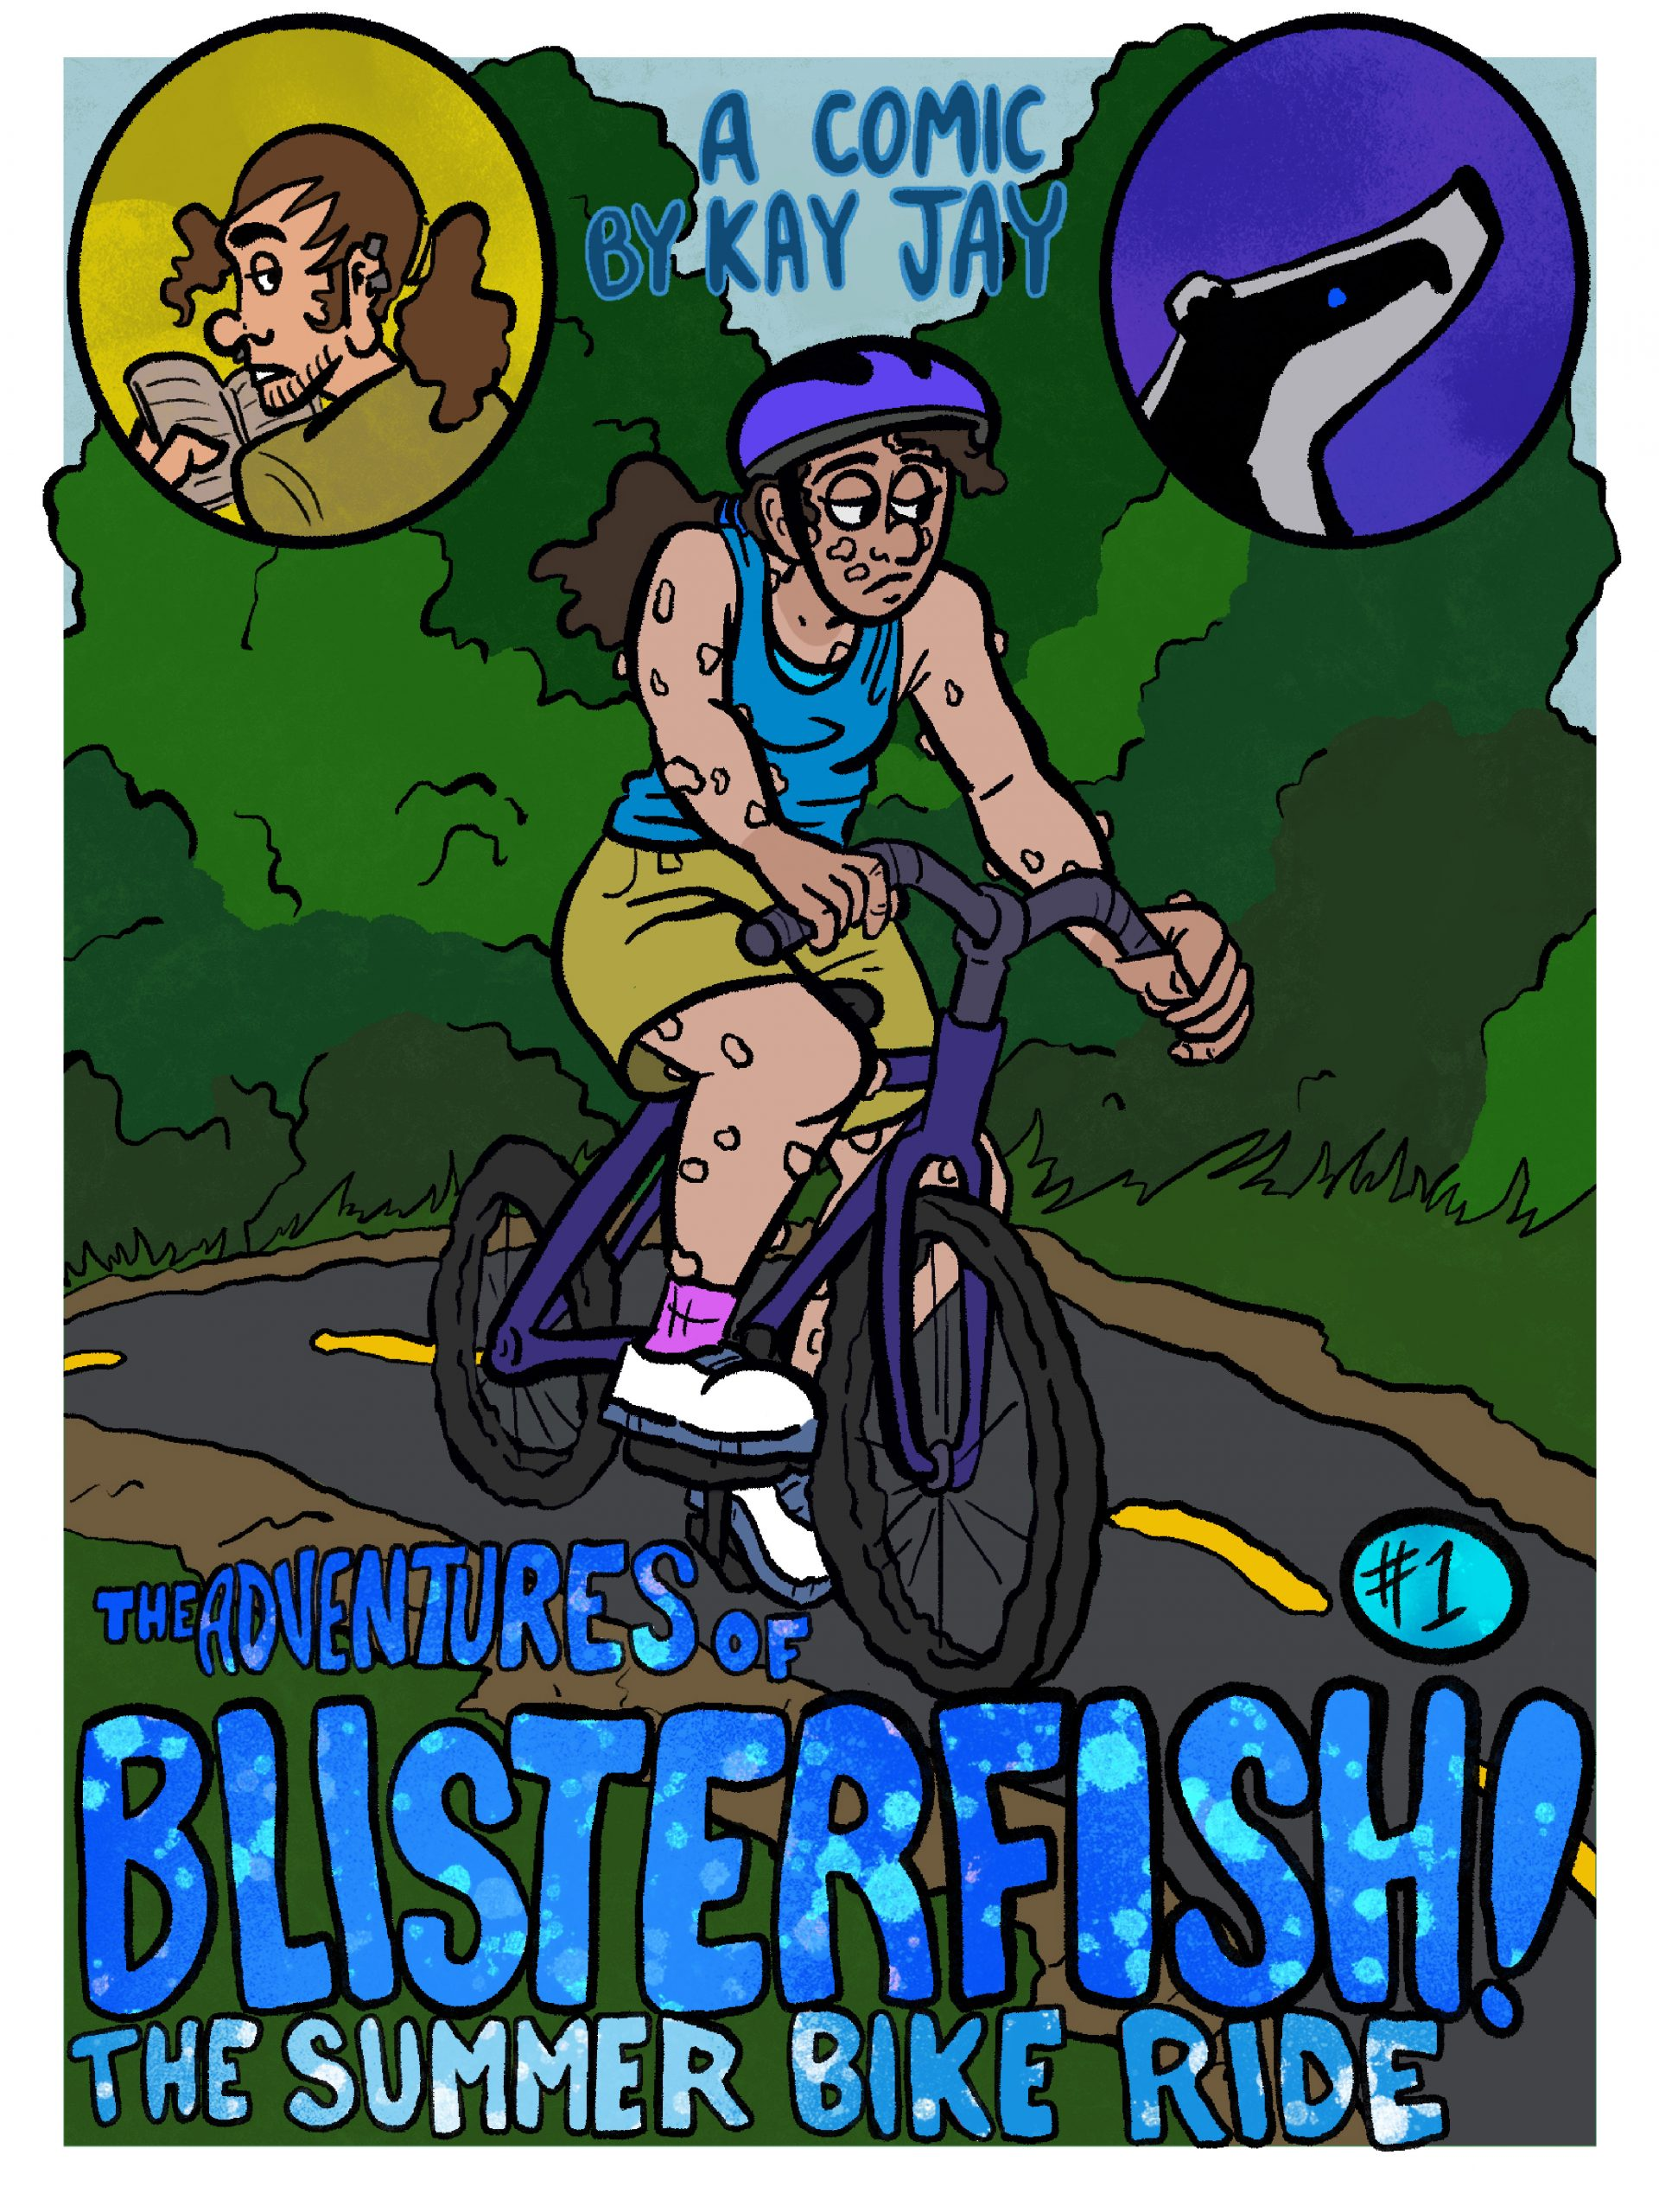 1.0 The Adventures of Blisterfish Chapter One-The Summer Bike Ride